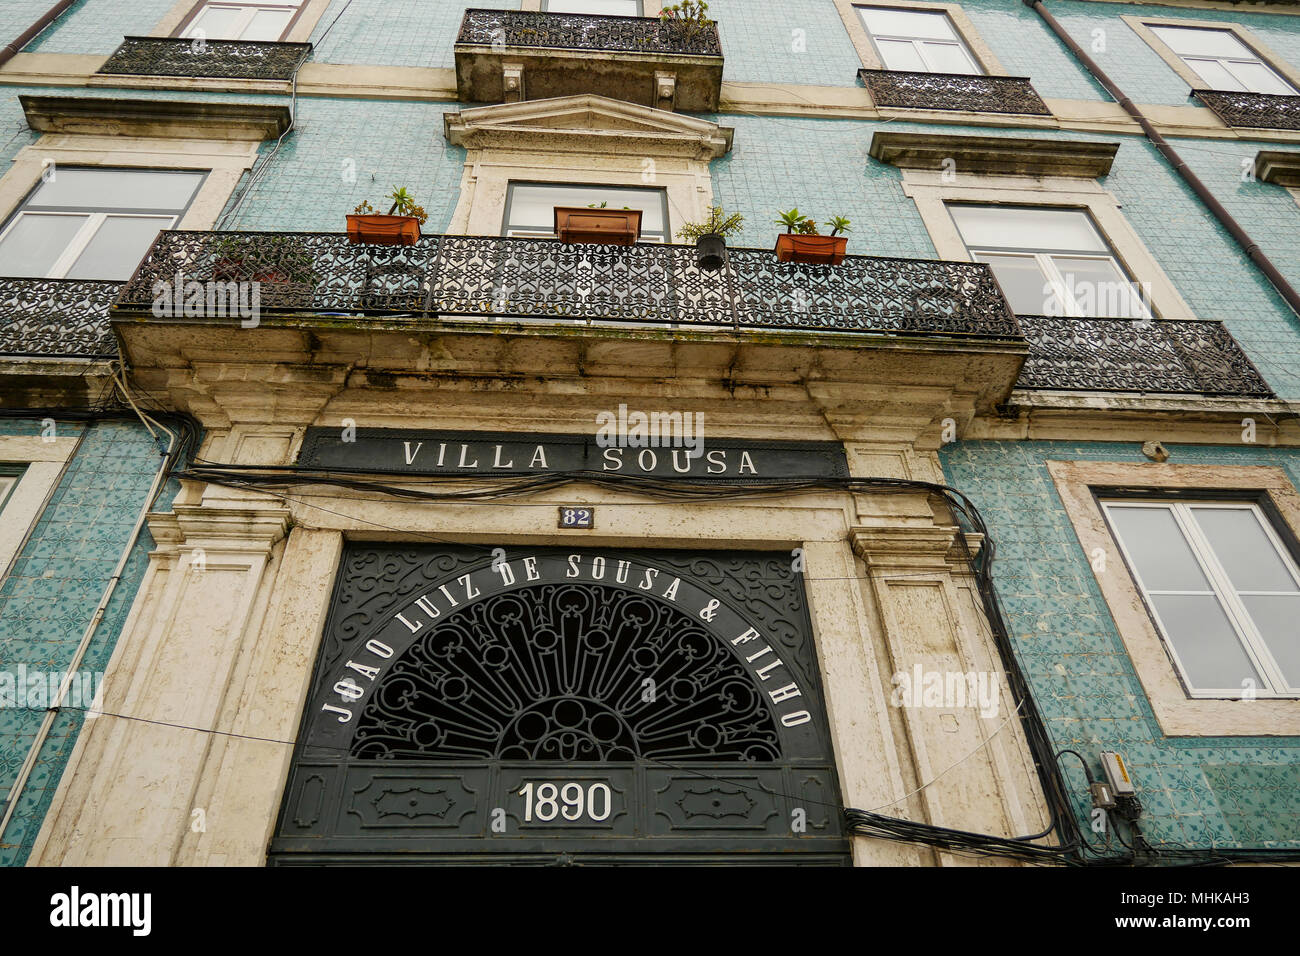 Villa Sousa, Alfama district, Lisbon, Portugal - Stock Image